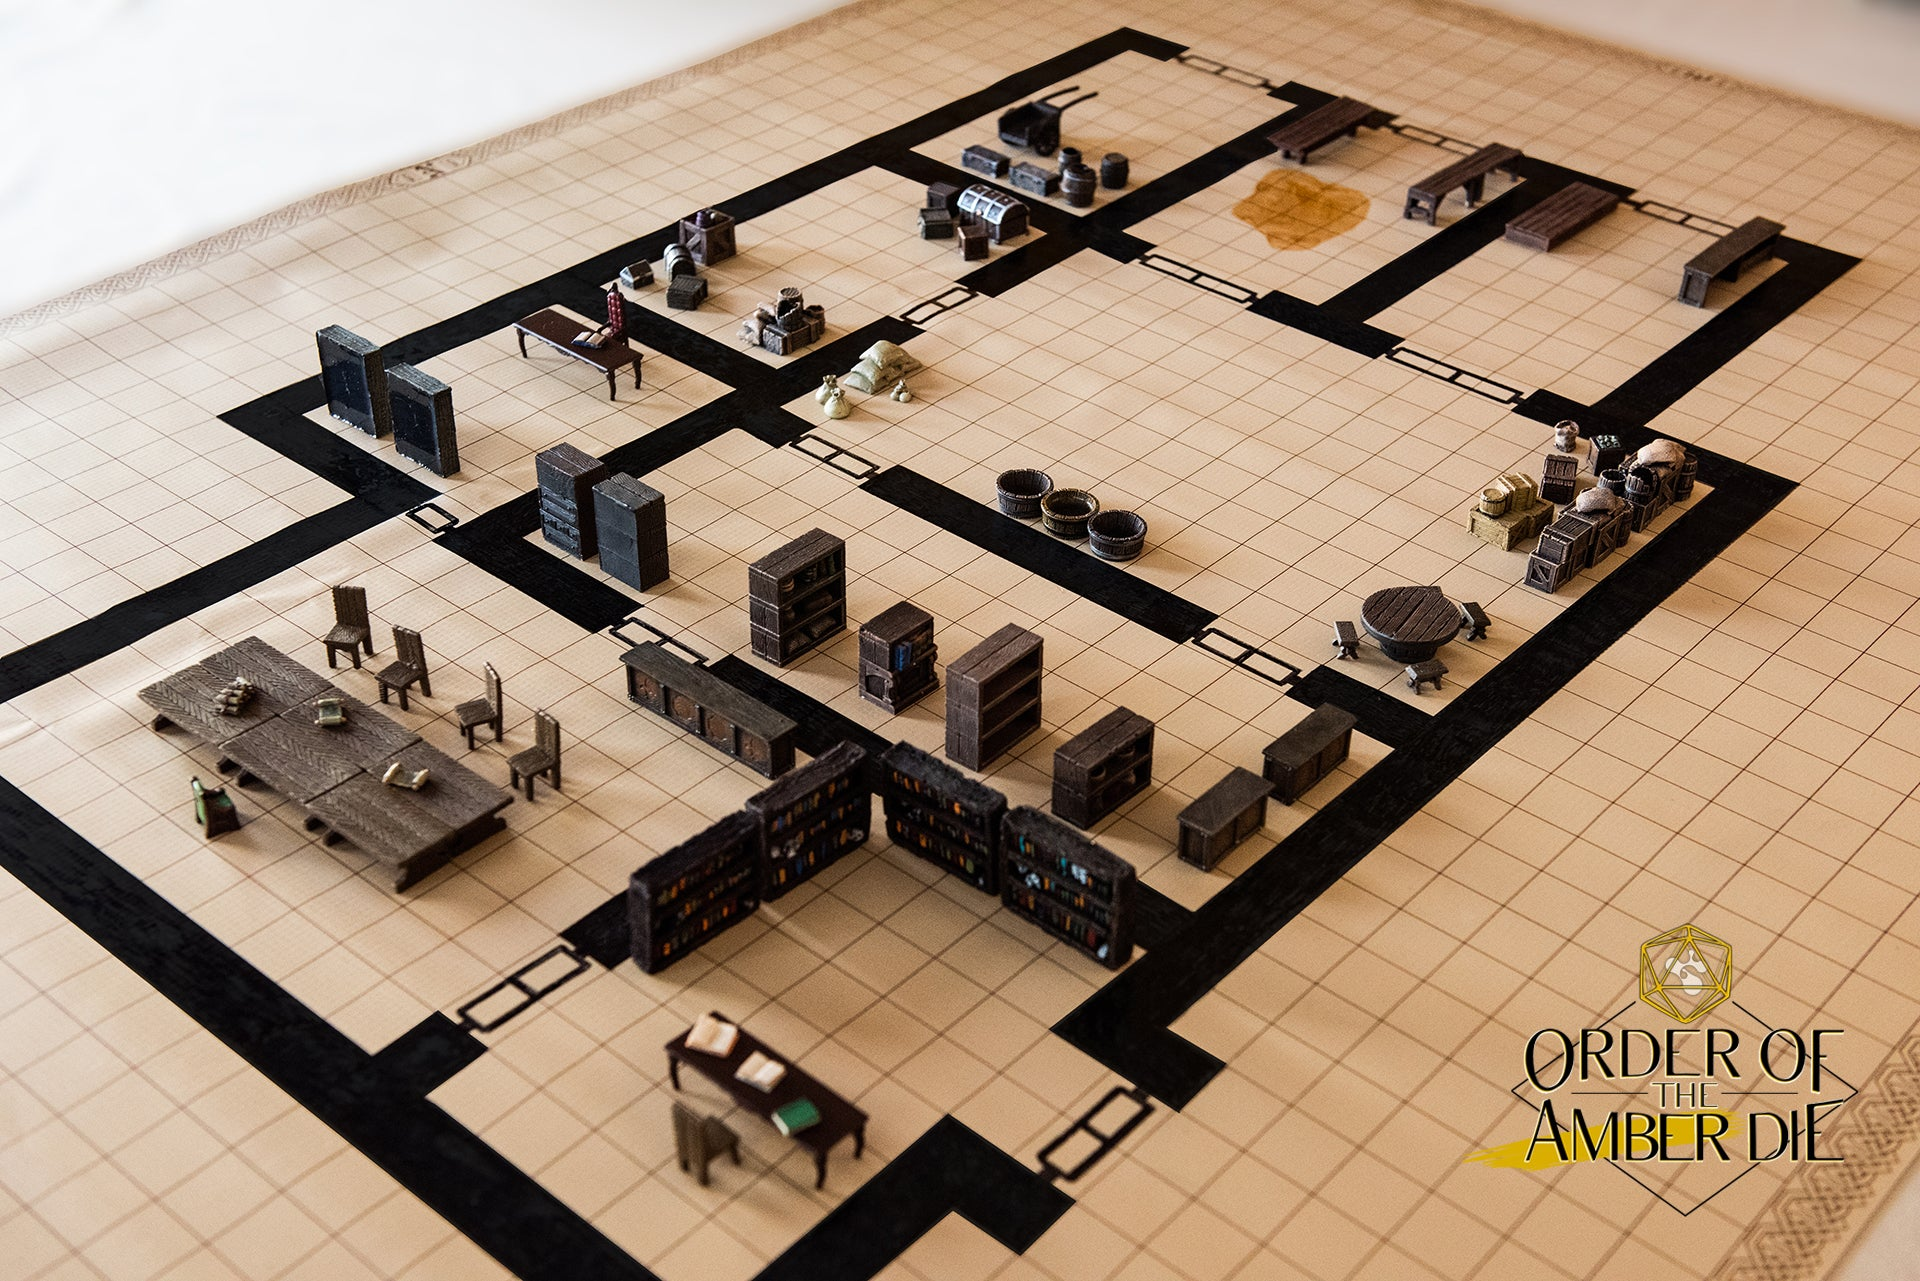 View looking down on the table map, different rooms include a dining hall, offices, and a few large storage rooms